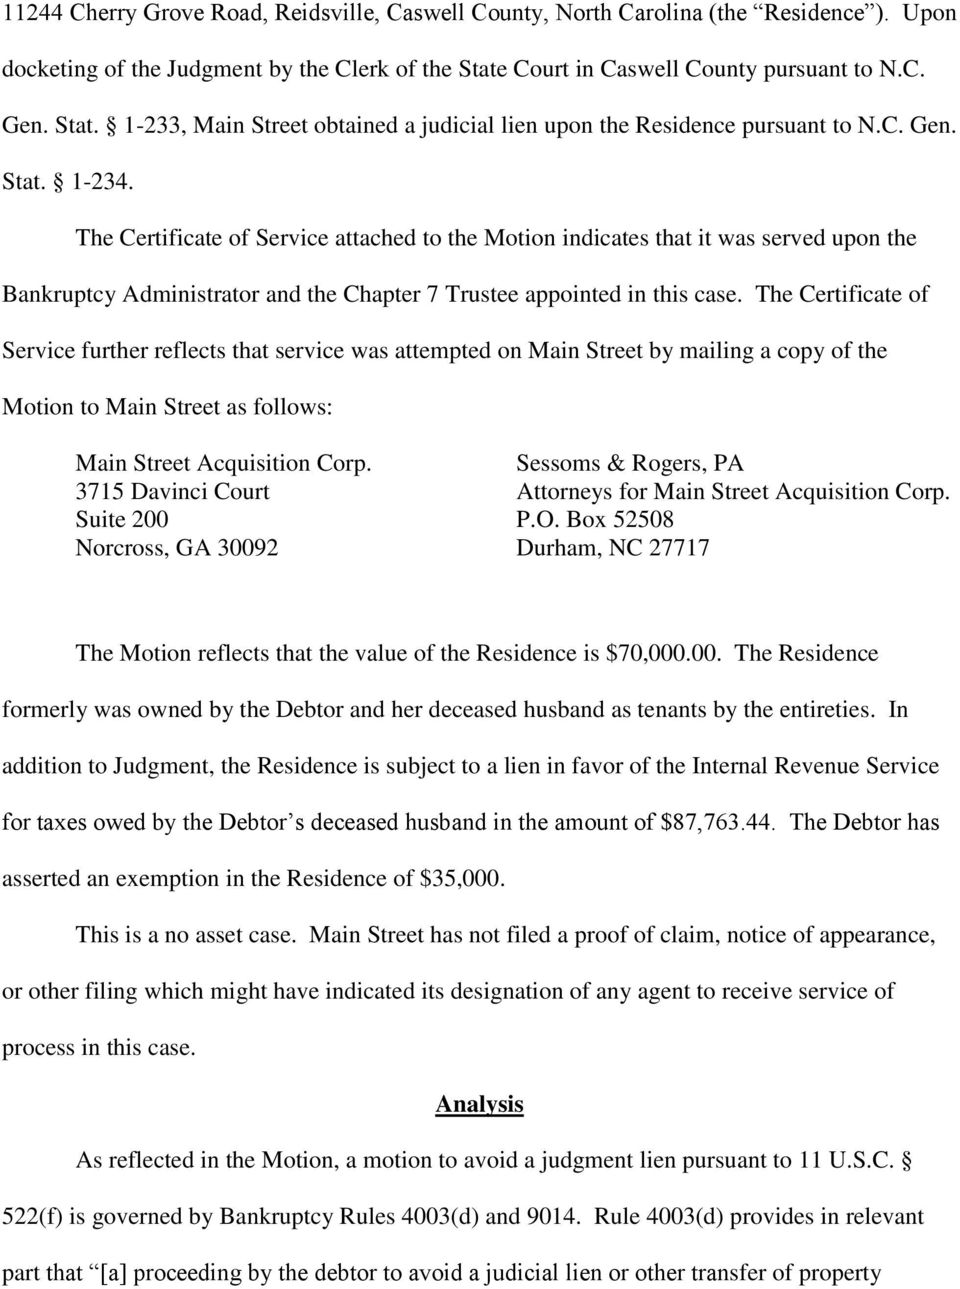 The Certificate of Service attached to the Motion indicates that it was served upon the Bankruptcy Administrator and the Chapter 7 Trustee appointed in this case.